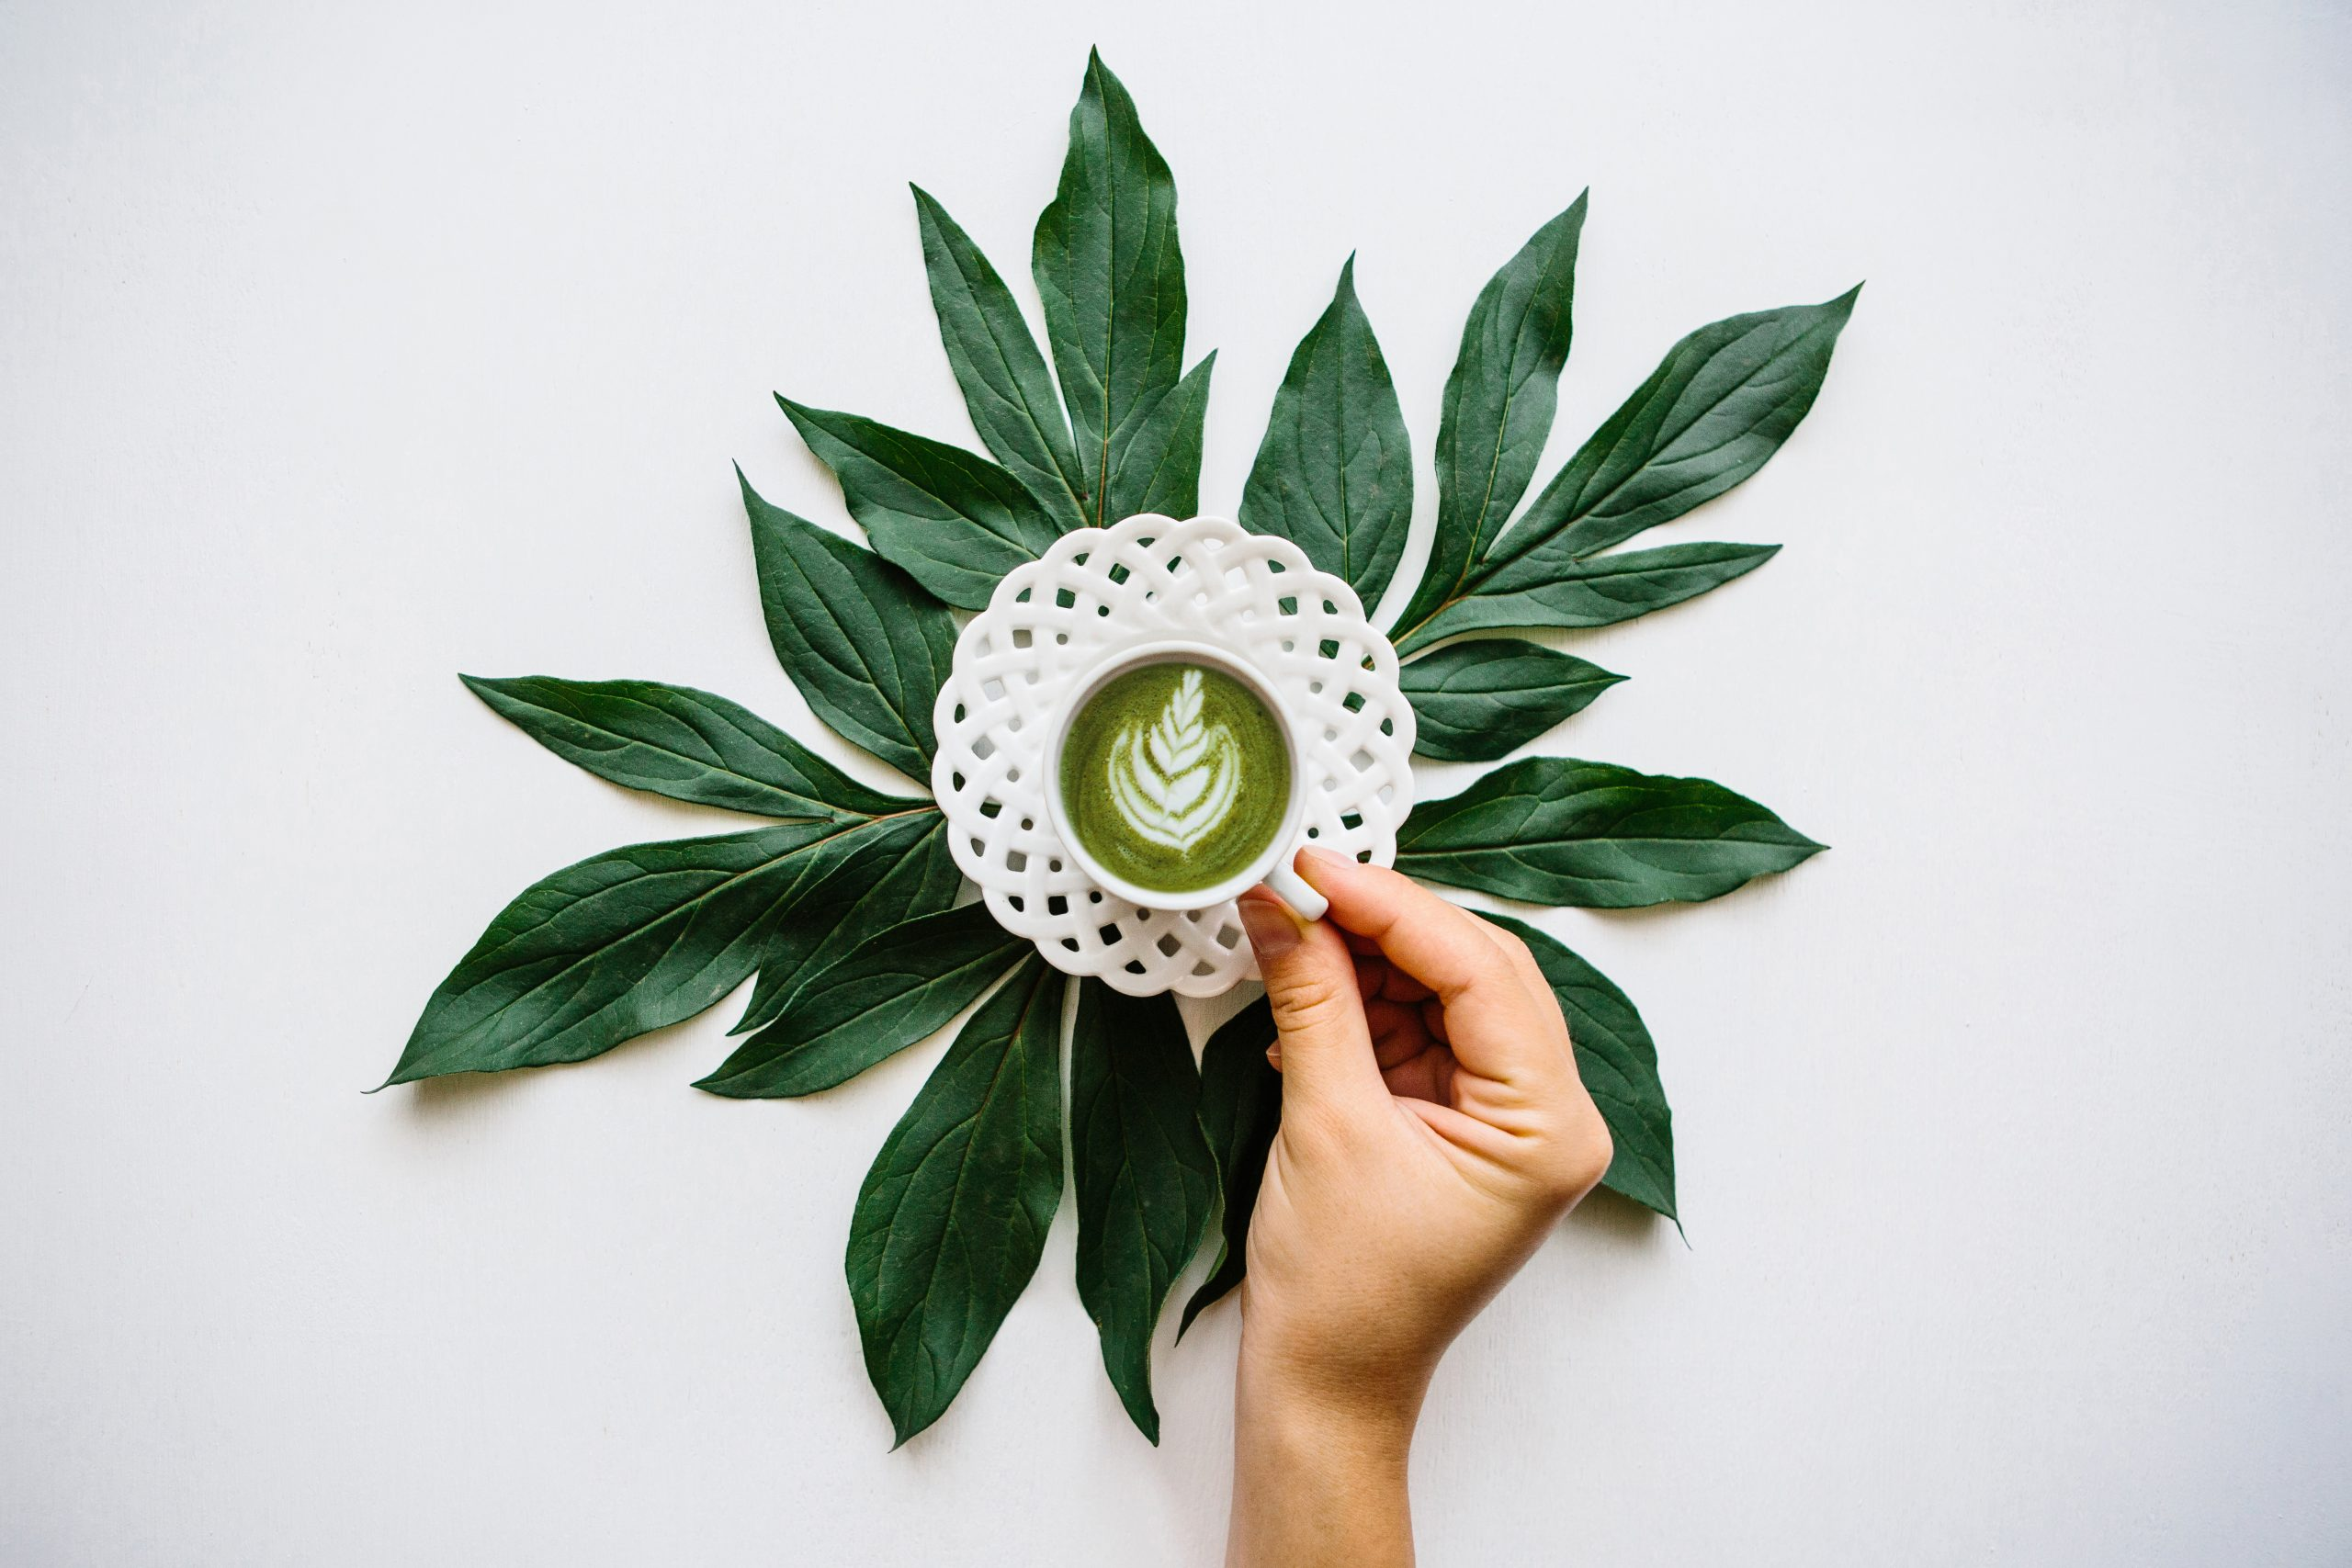 flat lay of matcha latte on a coaster surrounded by dark green leaves, a hand reaches in to grab the latte